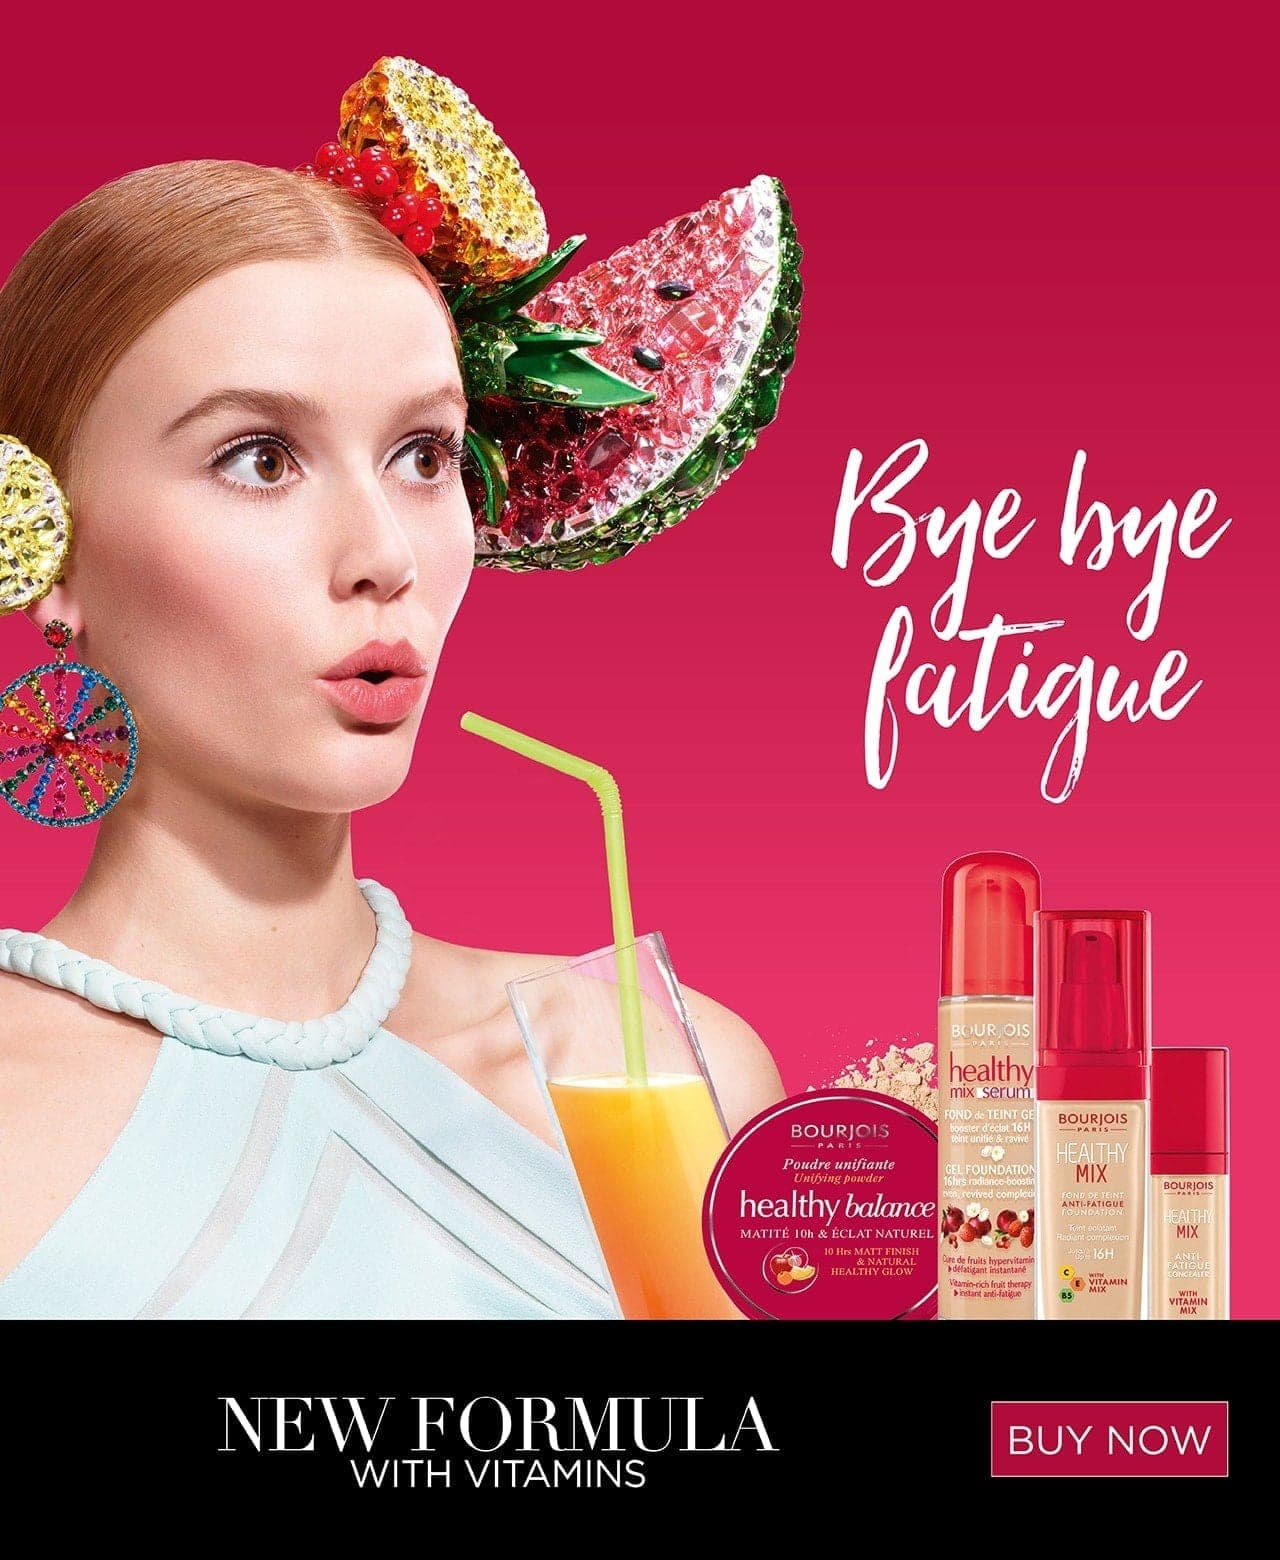 Bourjois Healthy Mix bye bye fatigue. New formula with vitamins